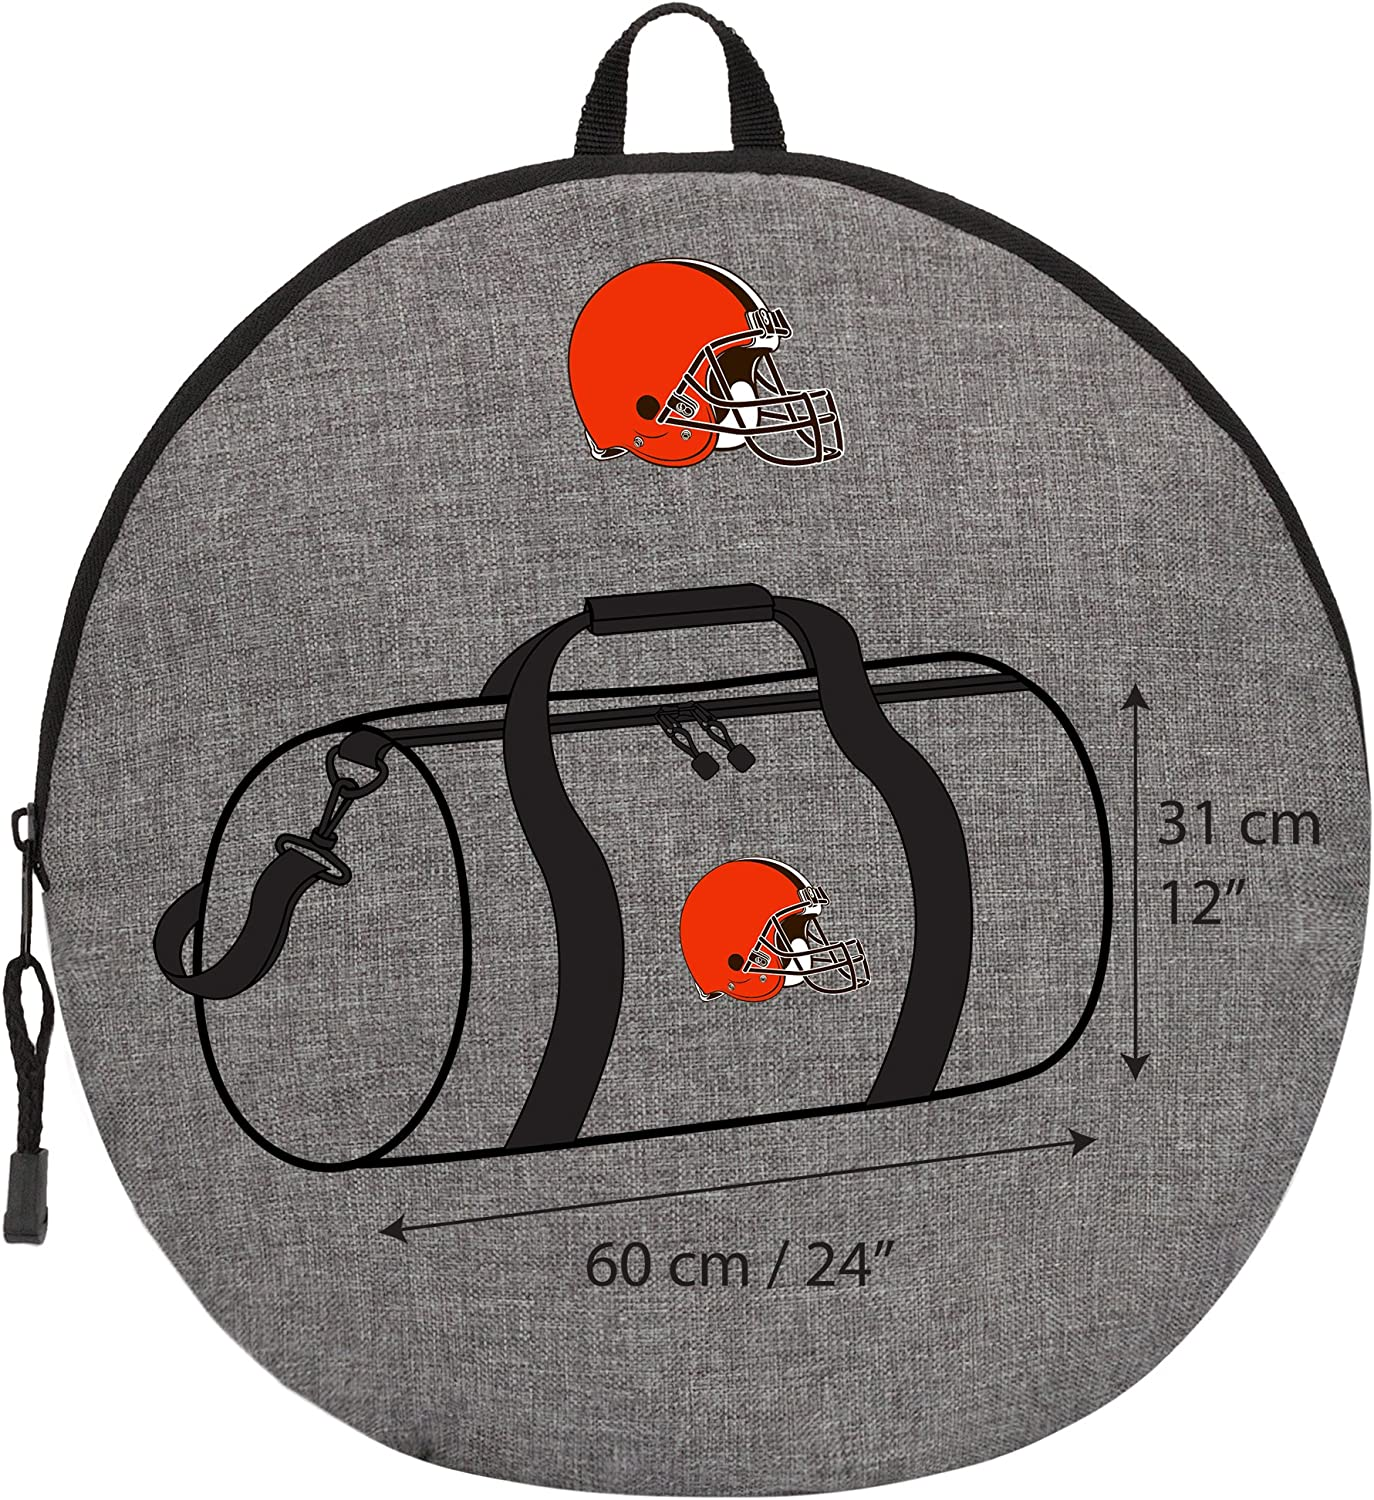 Gray Officially Licensed NFL Wingman Duffel Bag 24 x 12 x 12